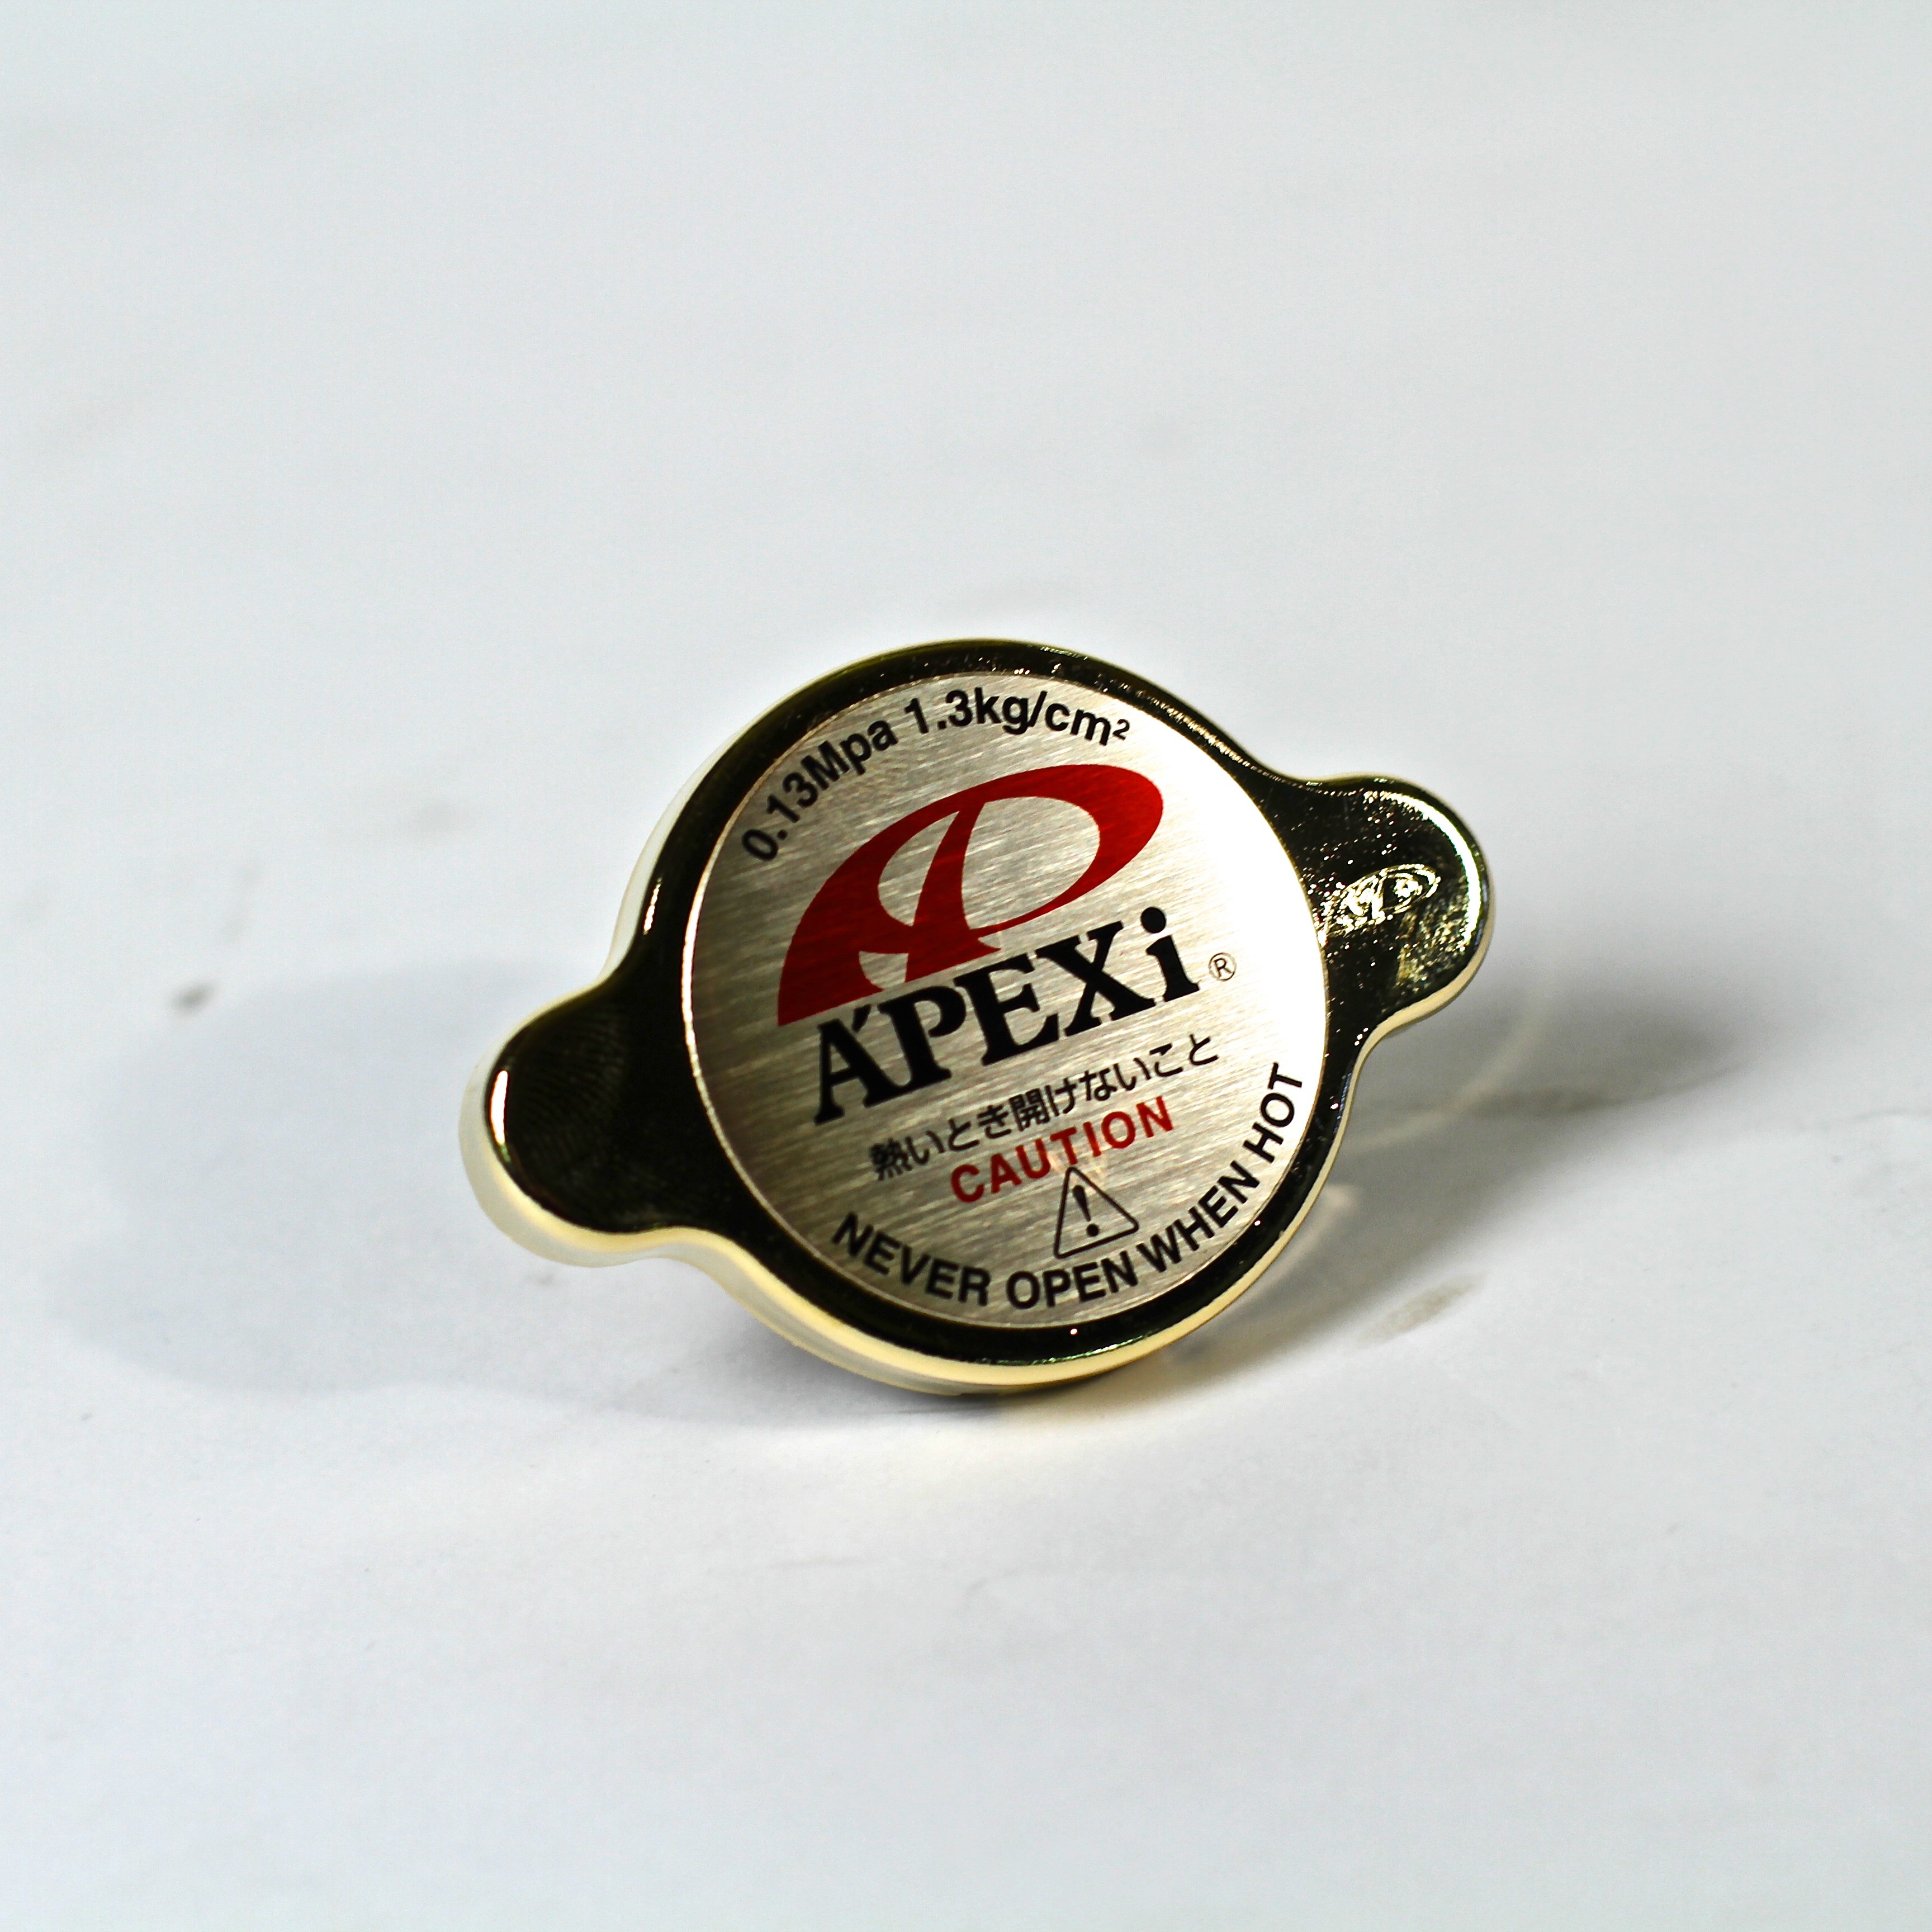 Apexi GT RADIATOR CAP B TYPE 2 : Honda (picture may vary slightly from original product)